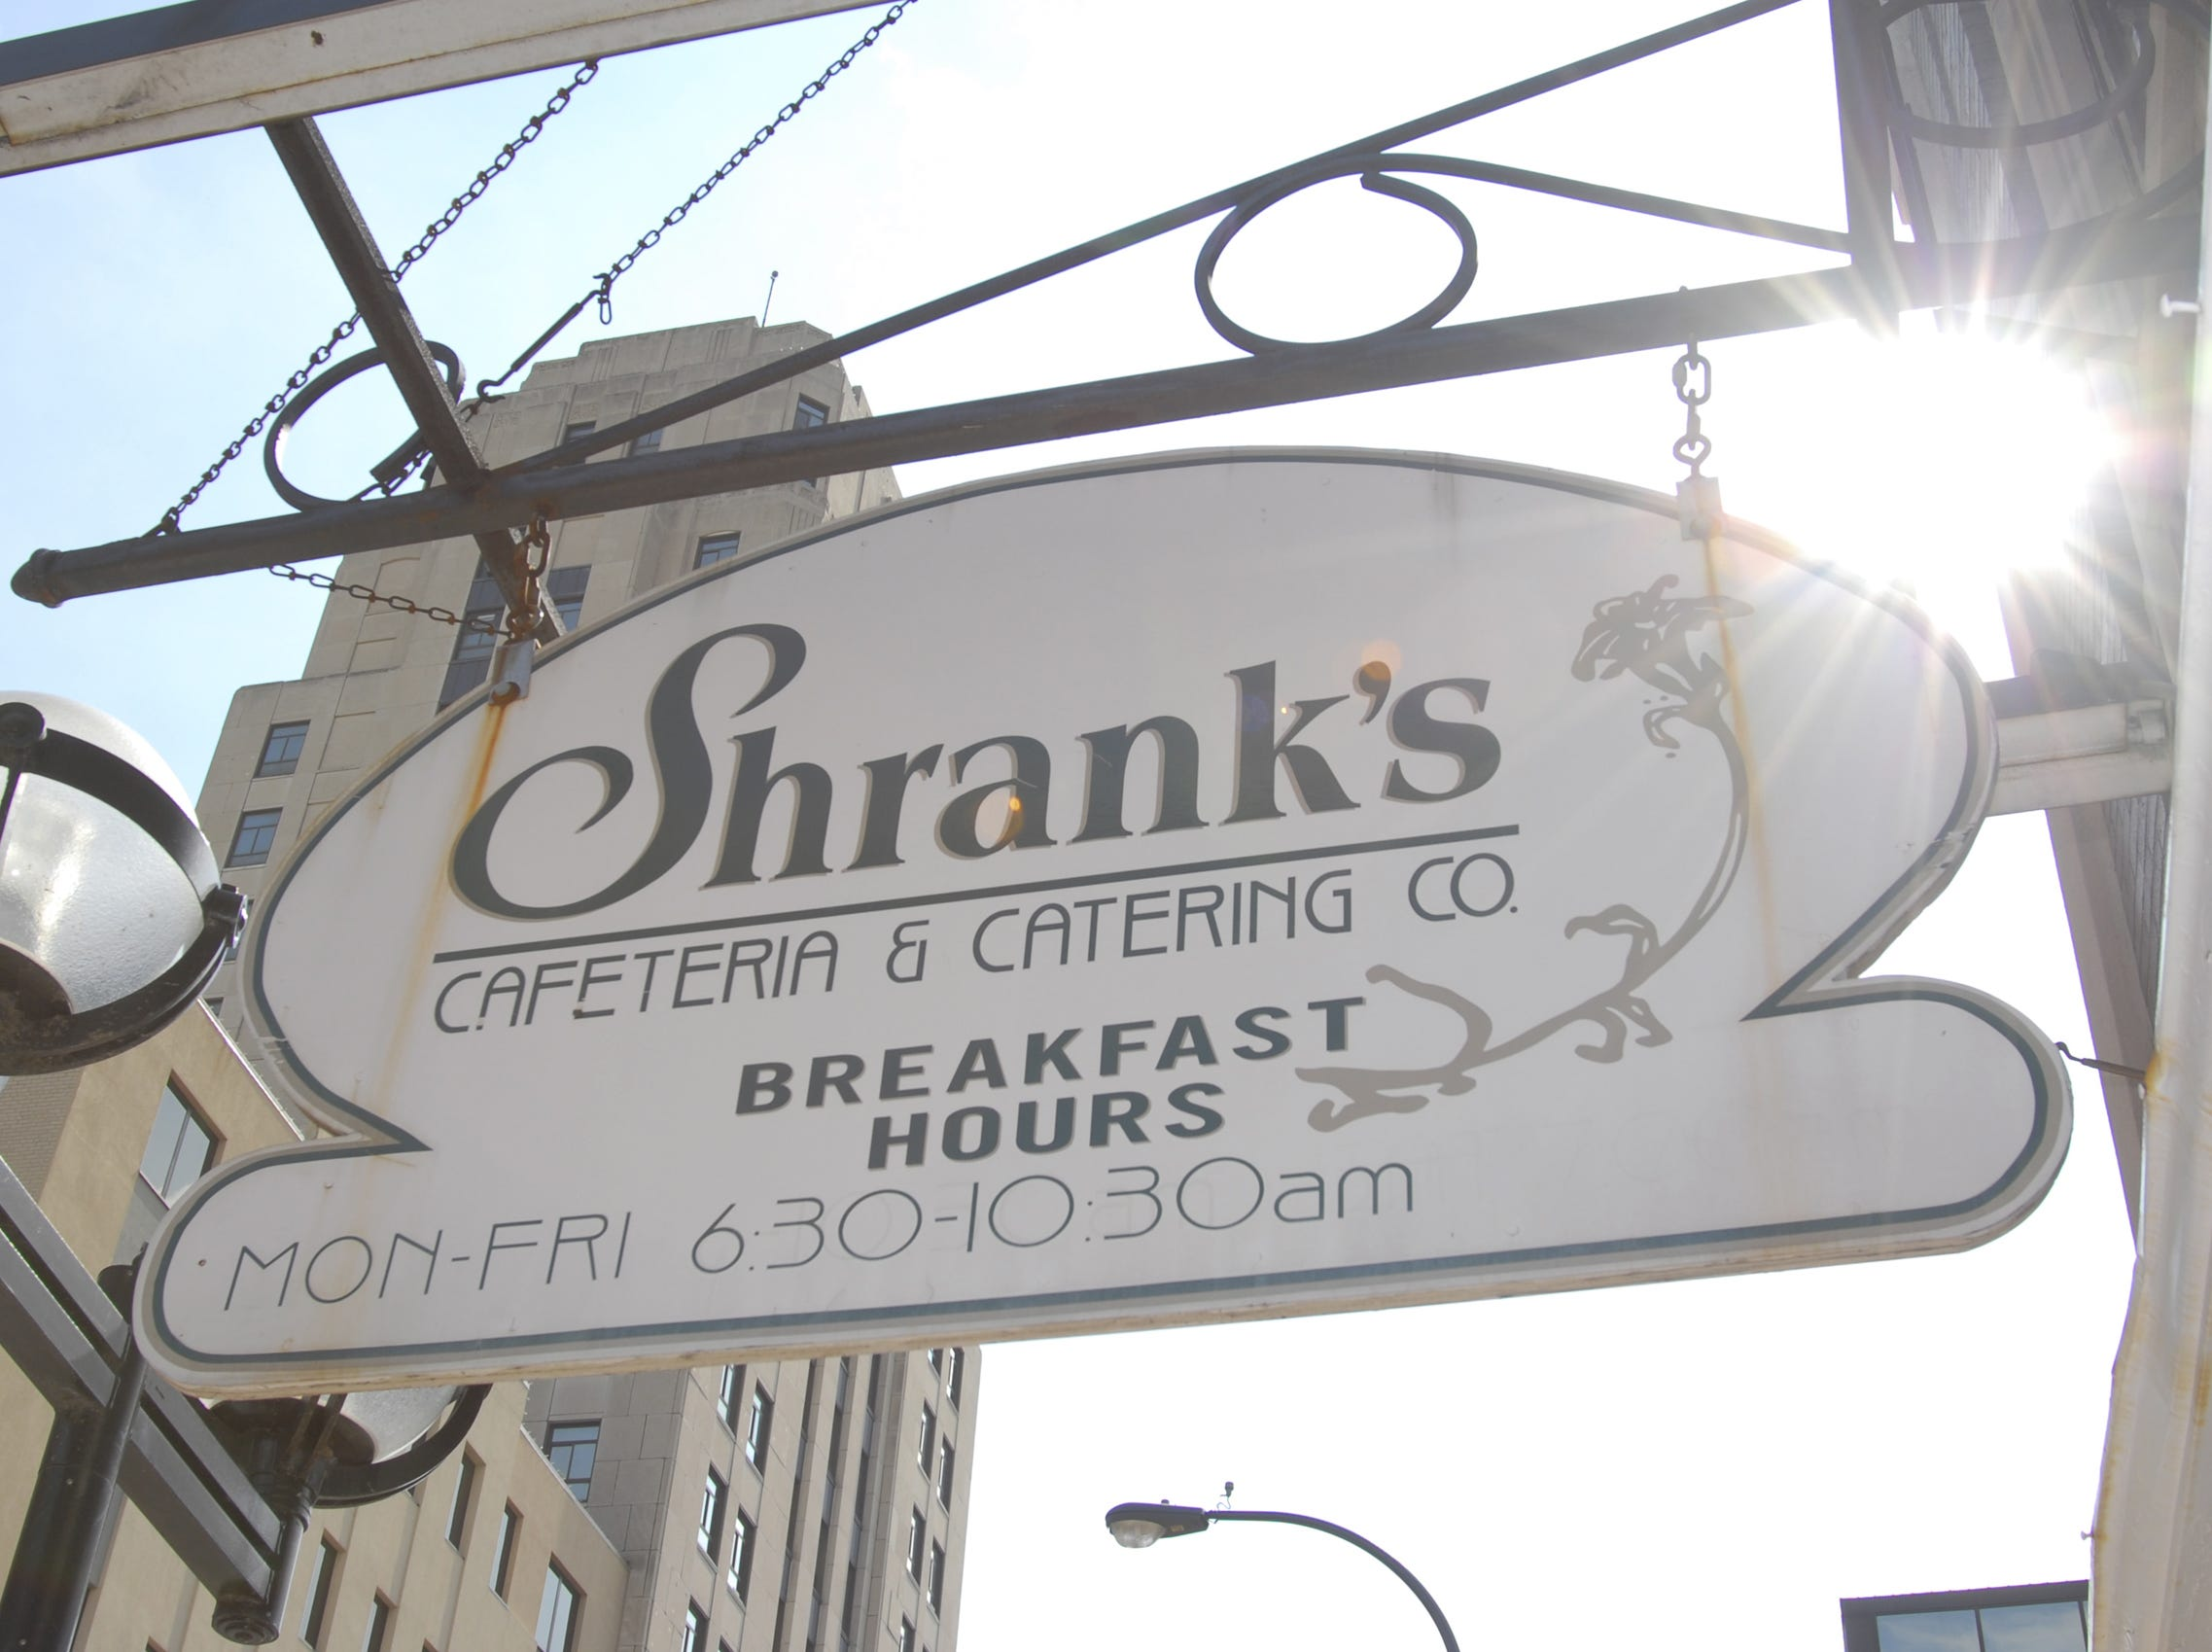 Shrank's Cafeteria, a long-time Battle Creek fixture in 2007.